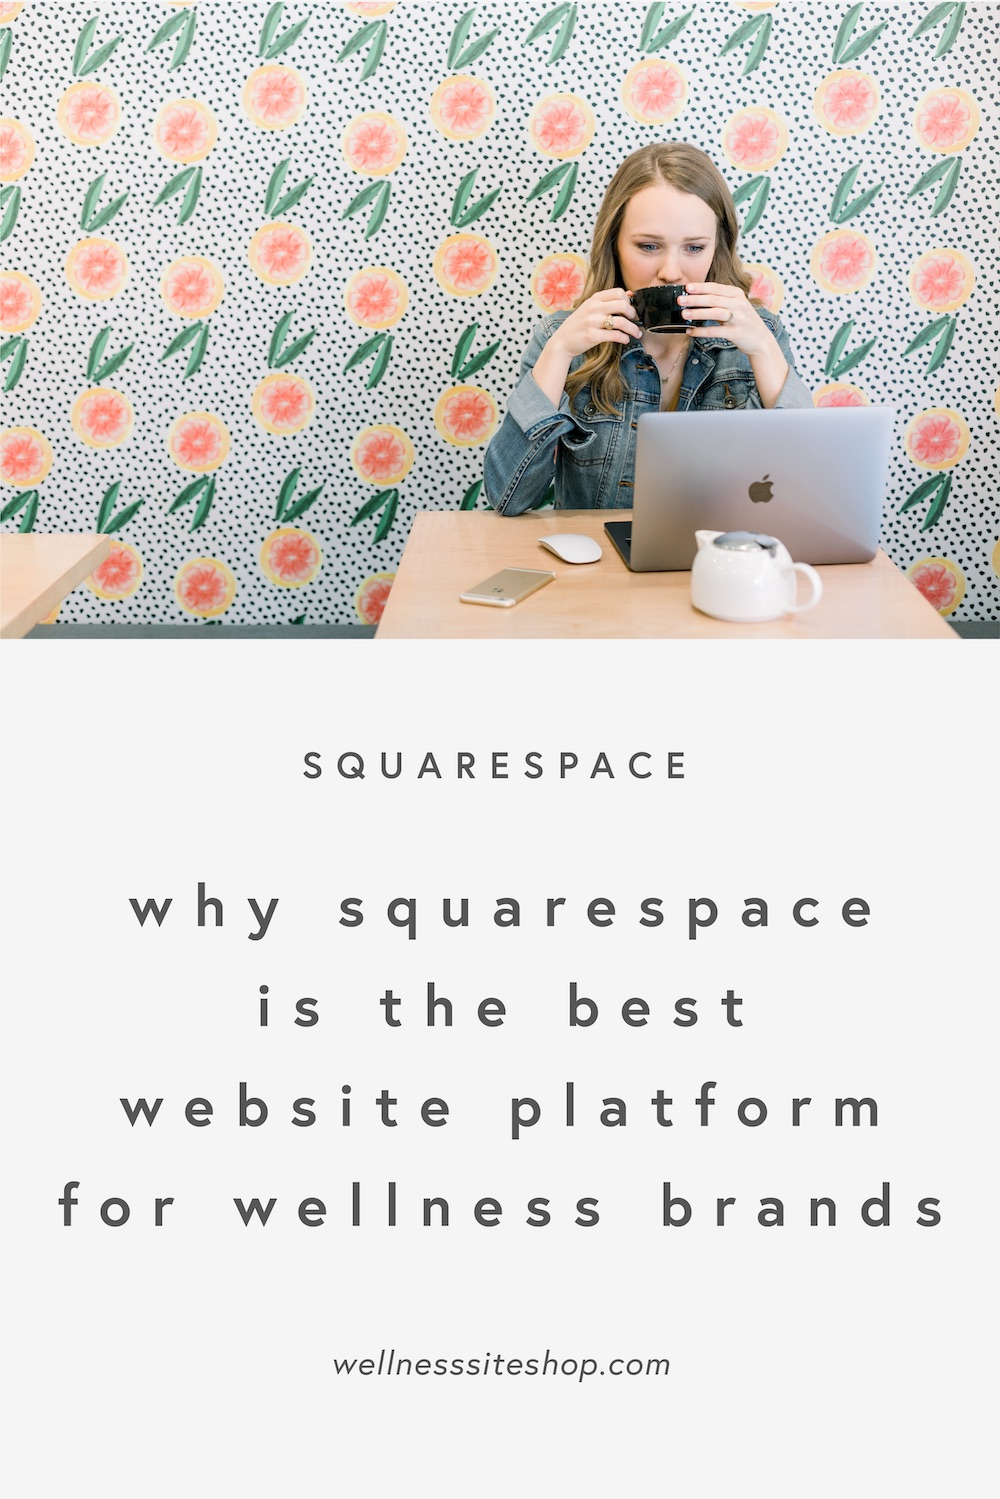 3-why squarespace is the best website platform for wellness brands.jpg